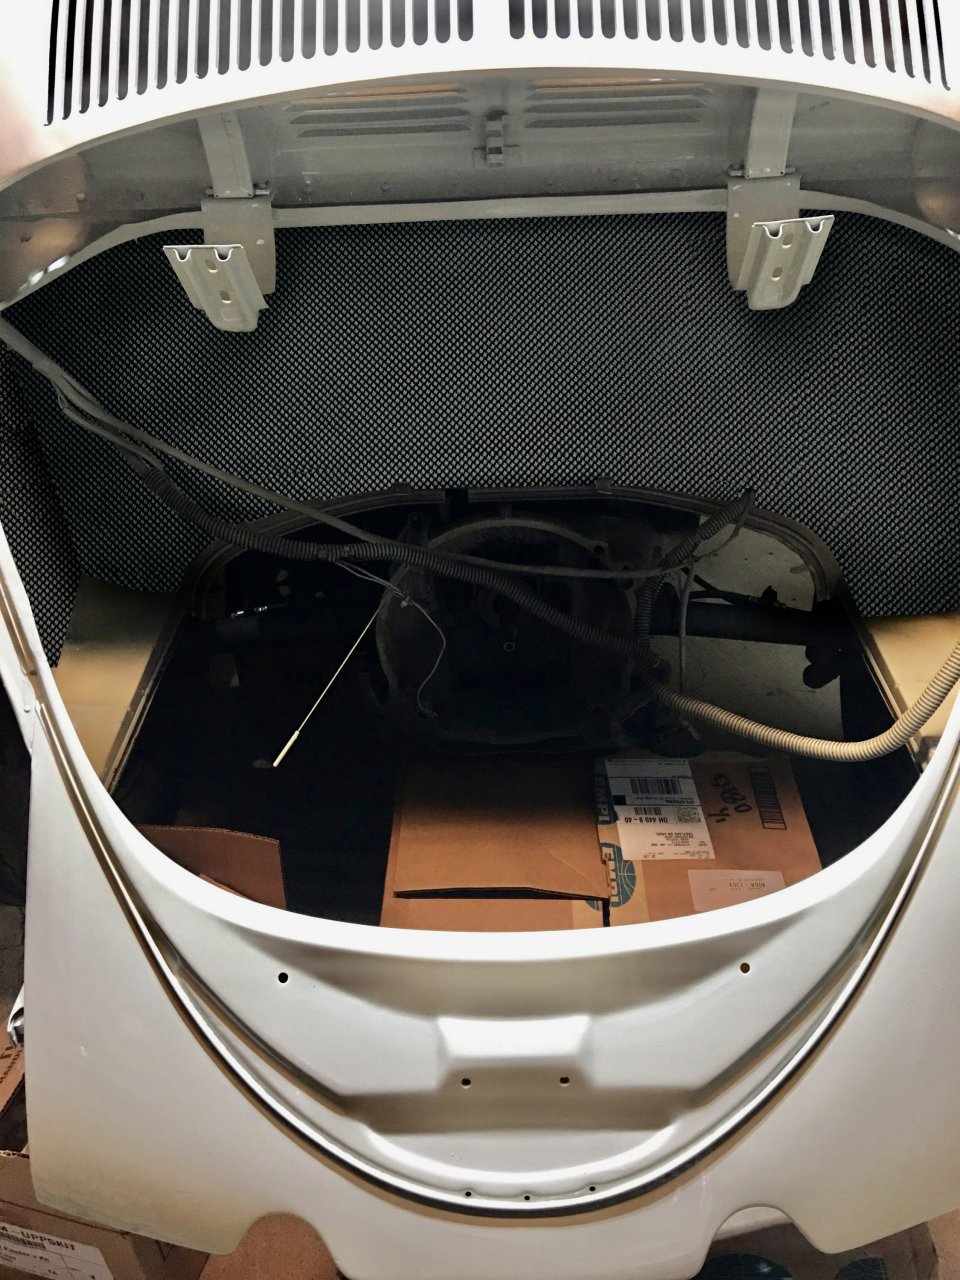 Beetle, Kits cool and quiet that vintage VW Beetle you're restoring, ClassicCars.com Journal